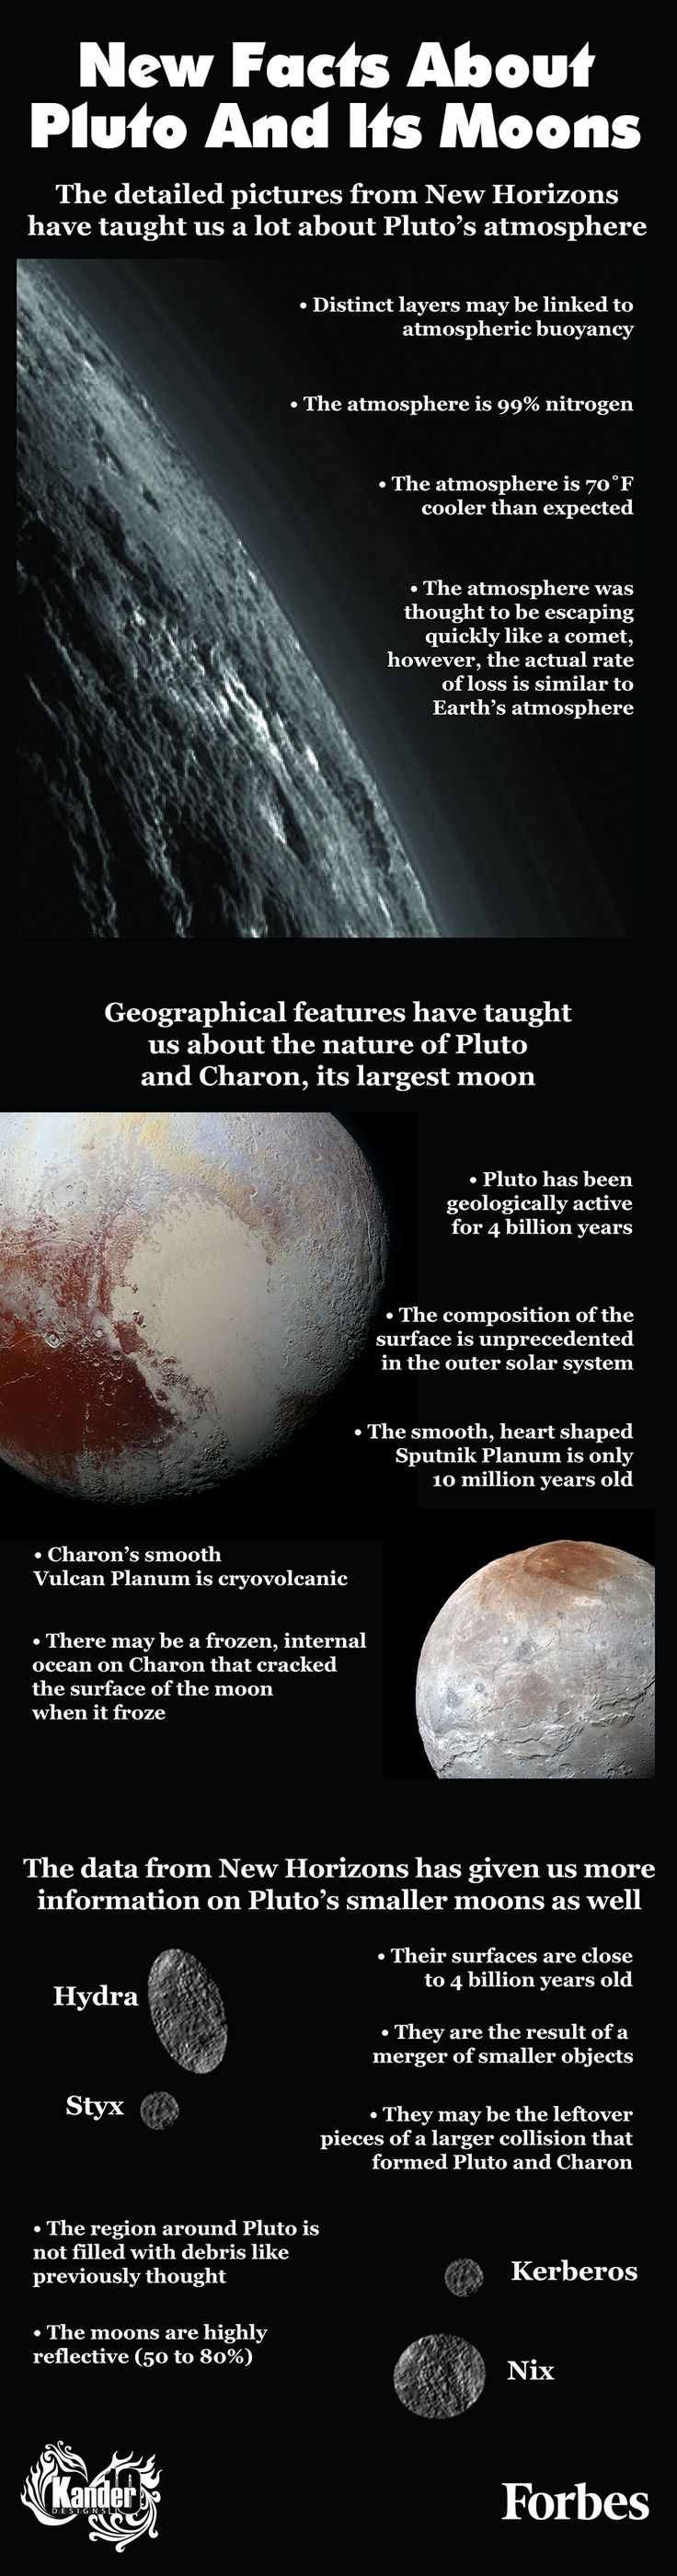 Scientists Discover New Facts About Pluto And Its Moons [Infographic]